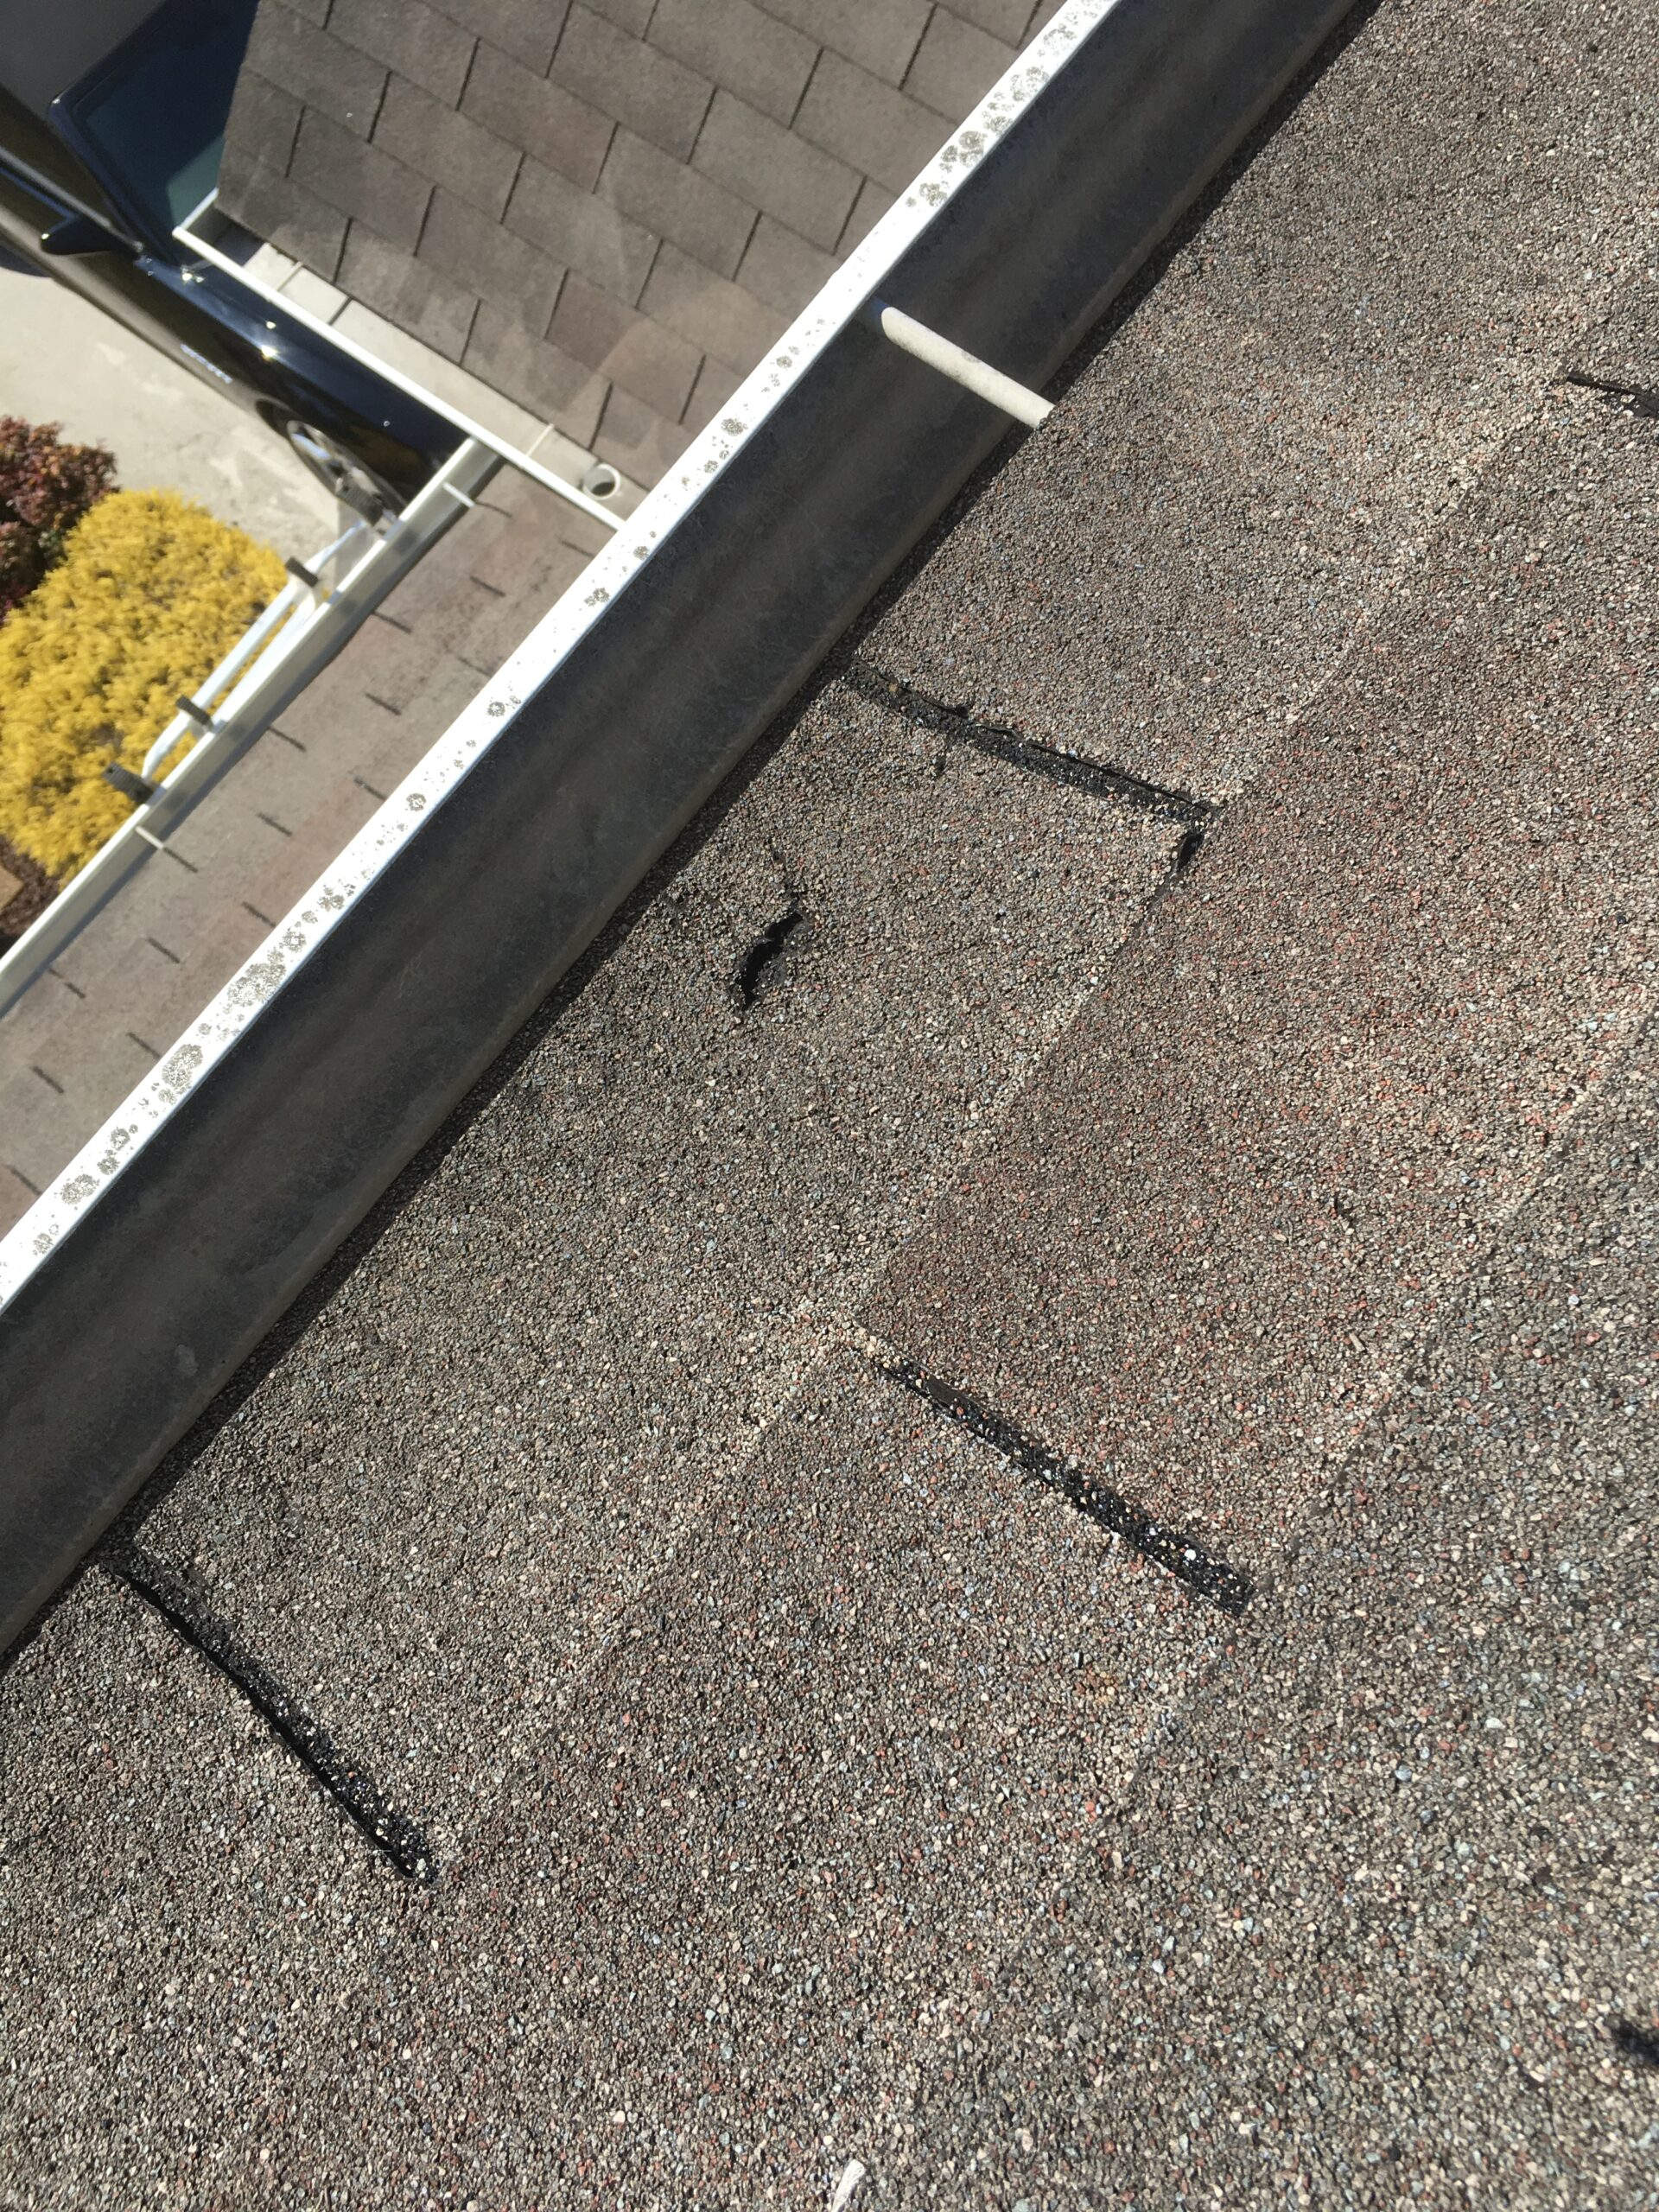 The shingle on the edge of the roof has cracks